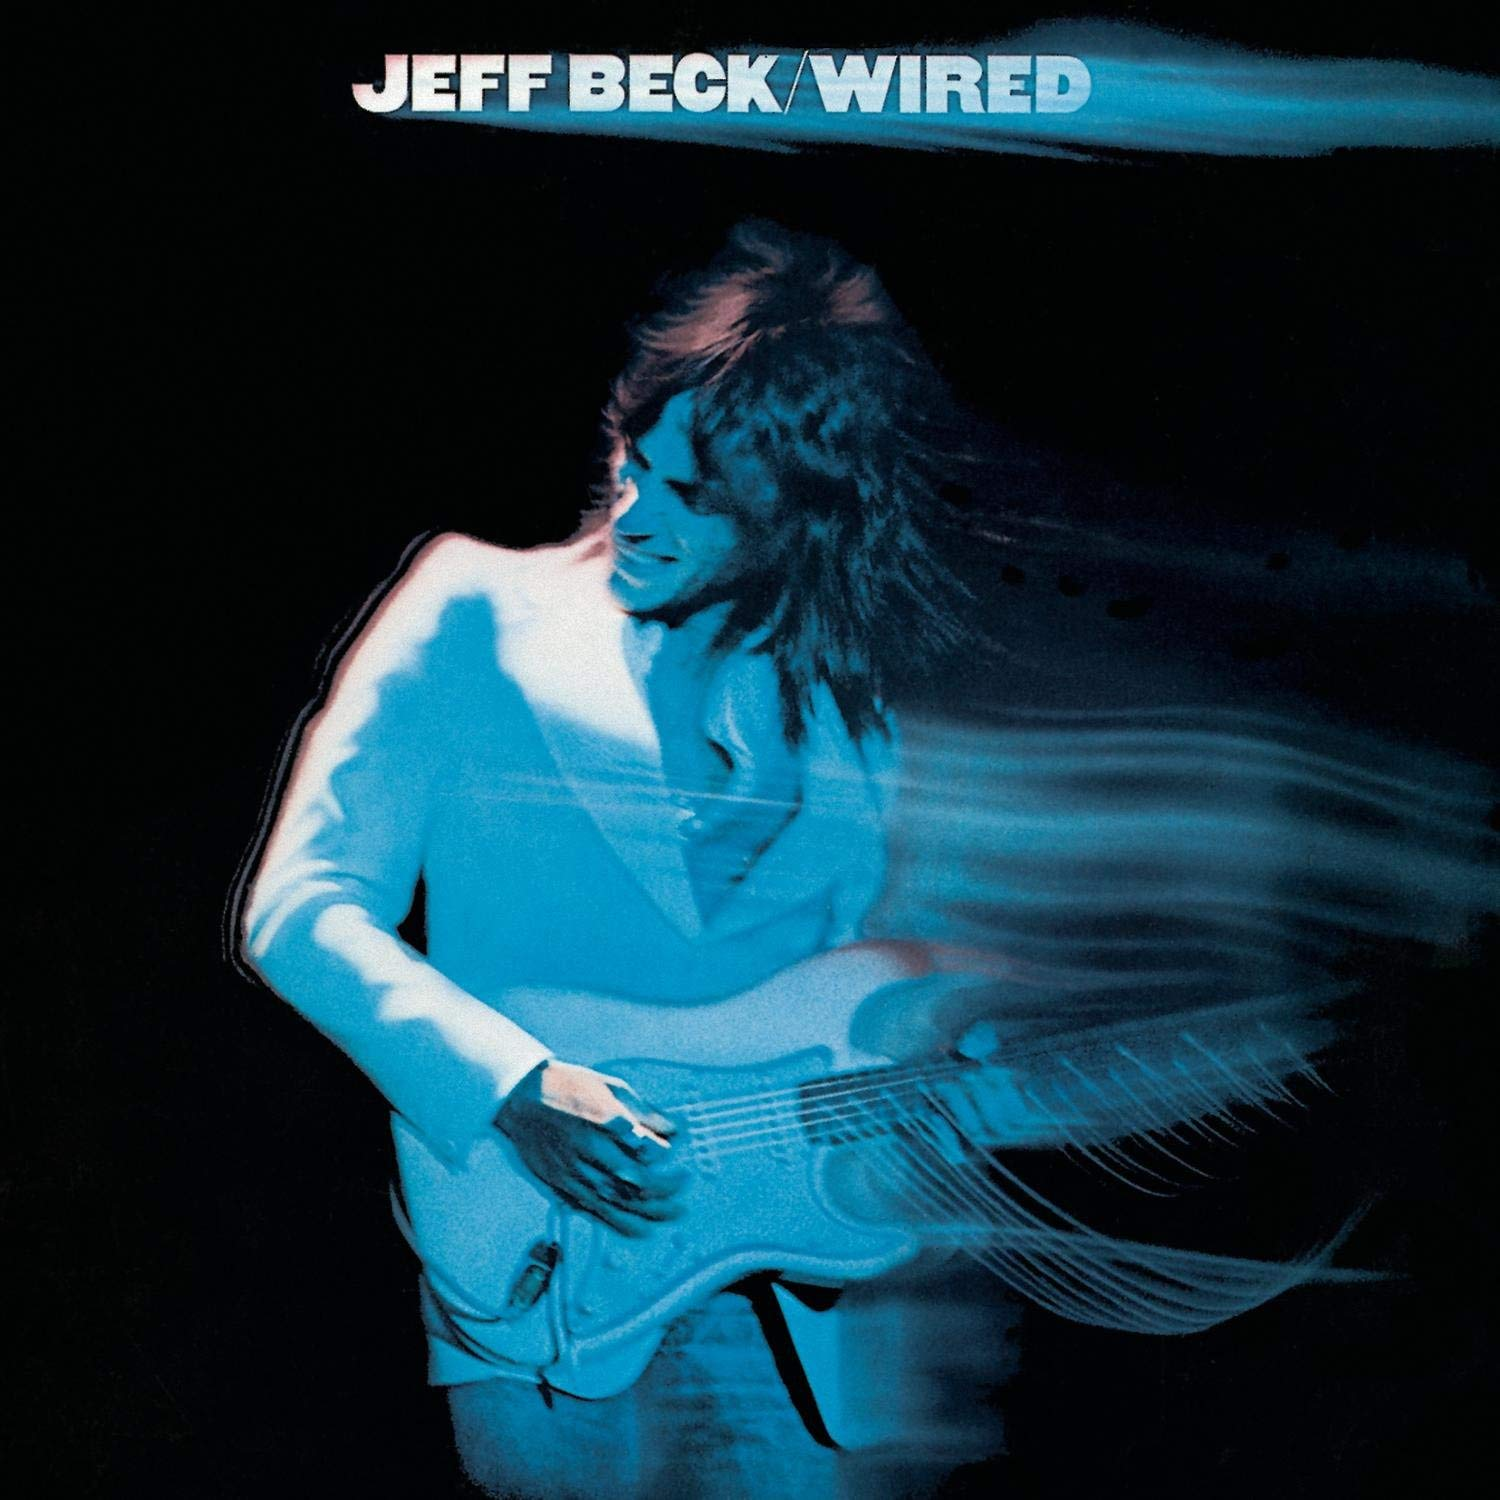 JEFF BECK   Wired, 1976, George Martin, Chris Bond, & Jan Hammer, 37:21